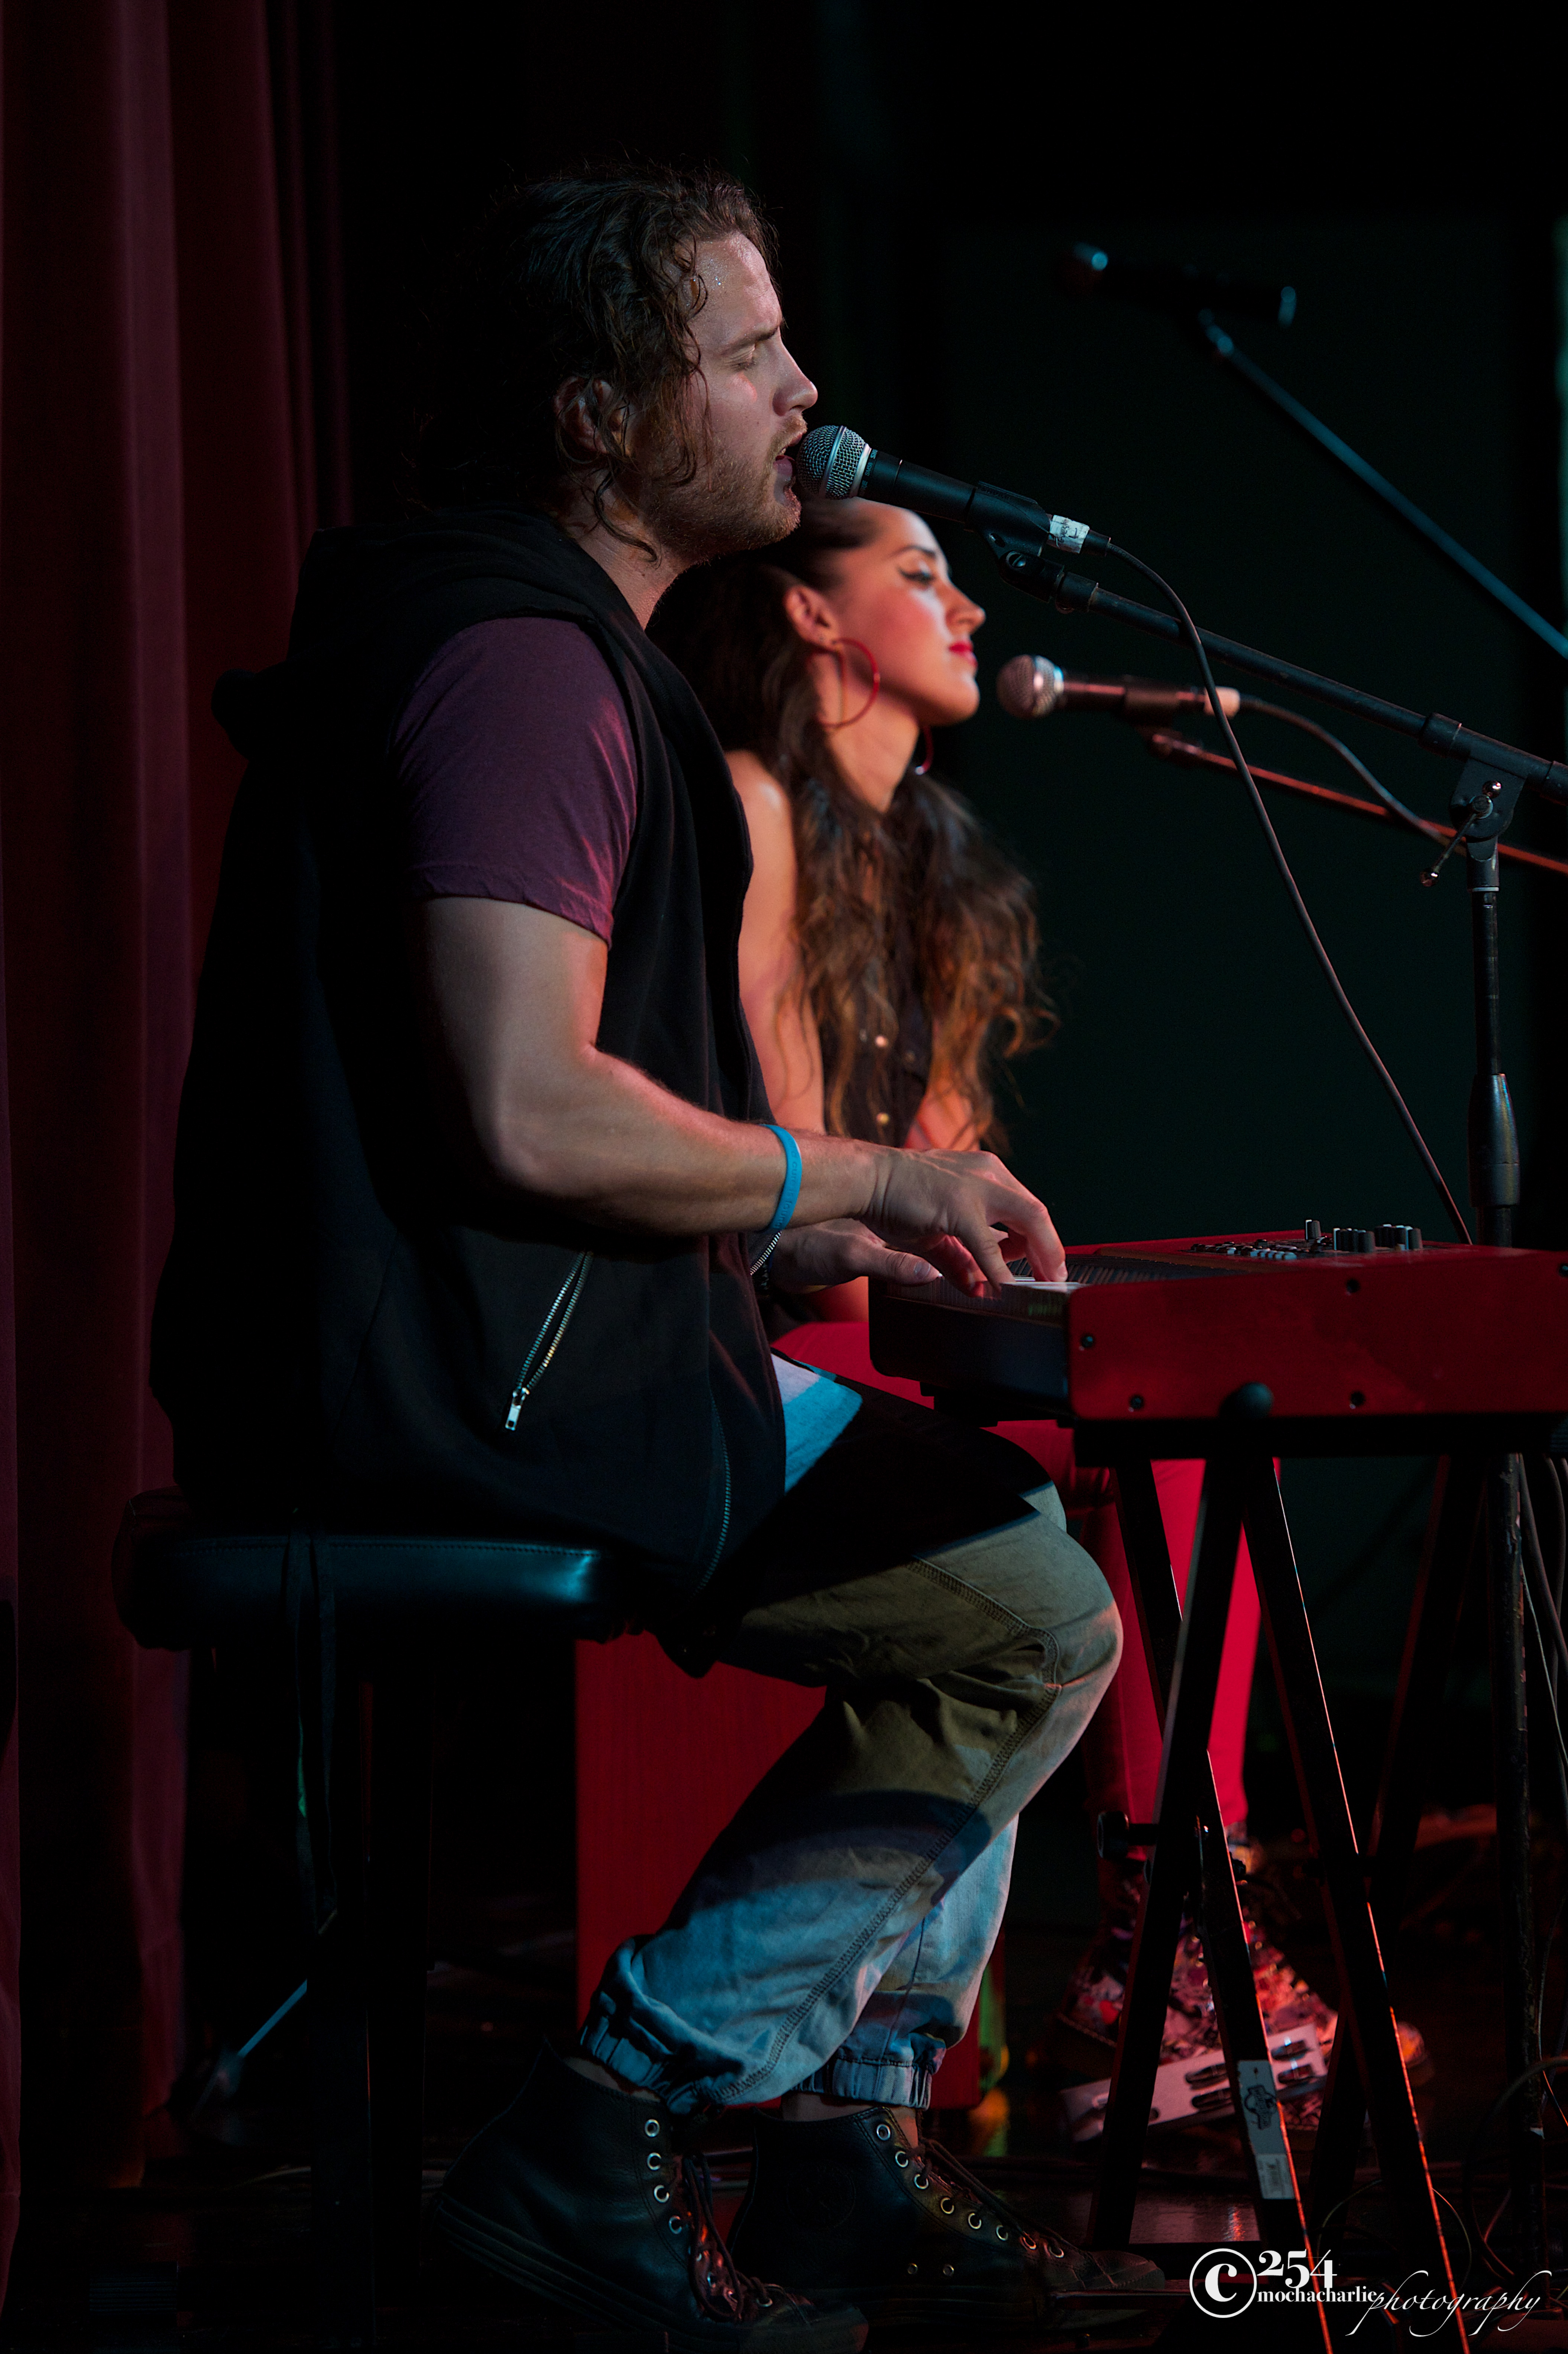 Carson and Tess Henly Live at Green River CC (Photo by Mocha Charlie)